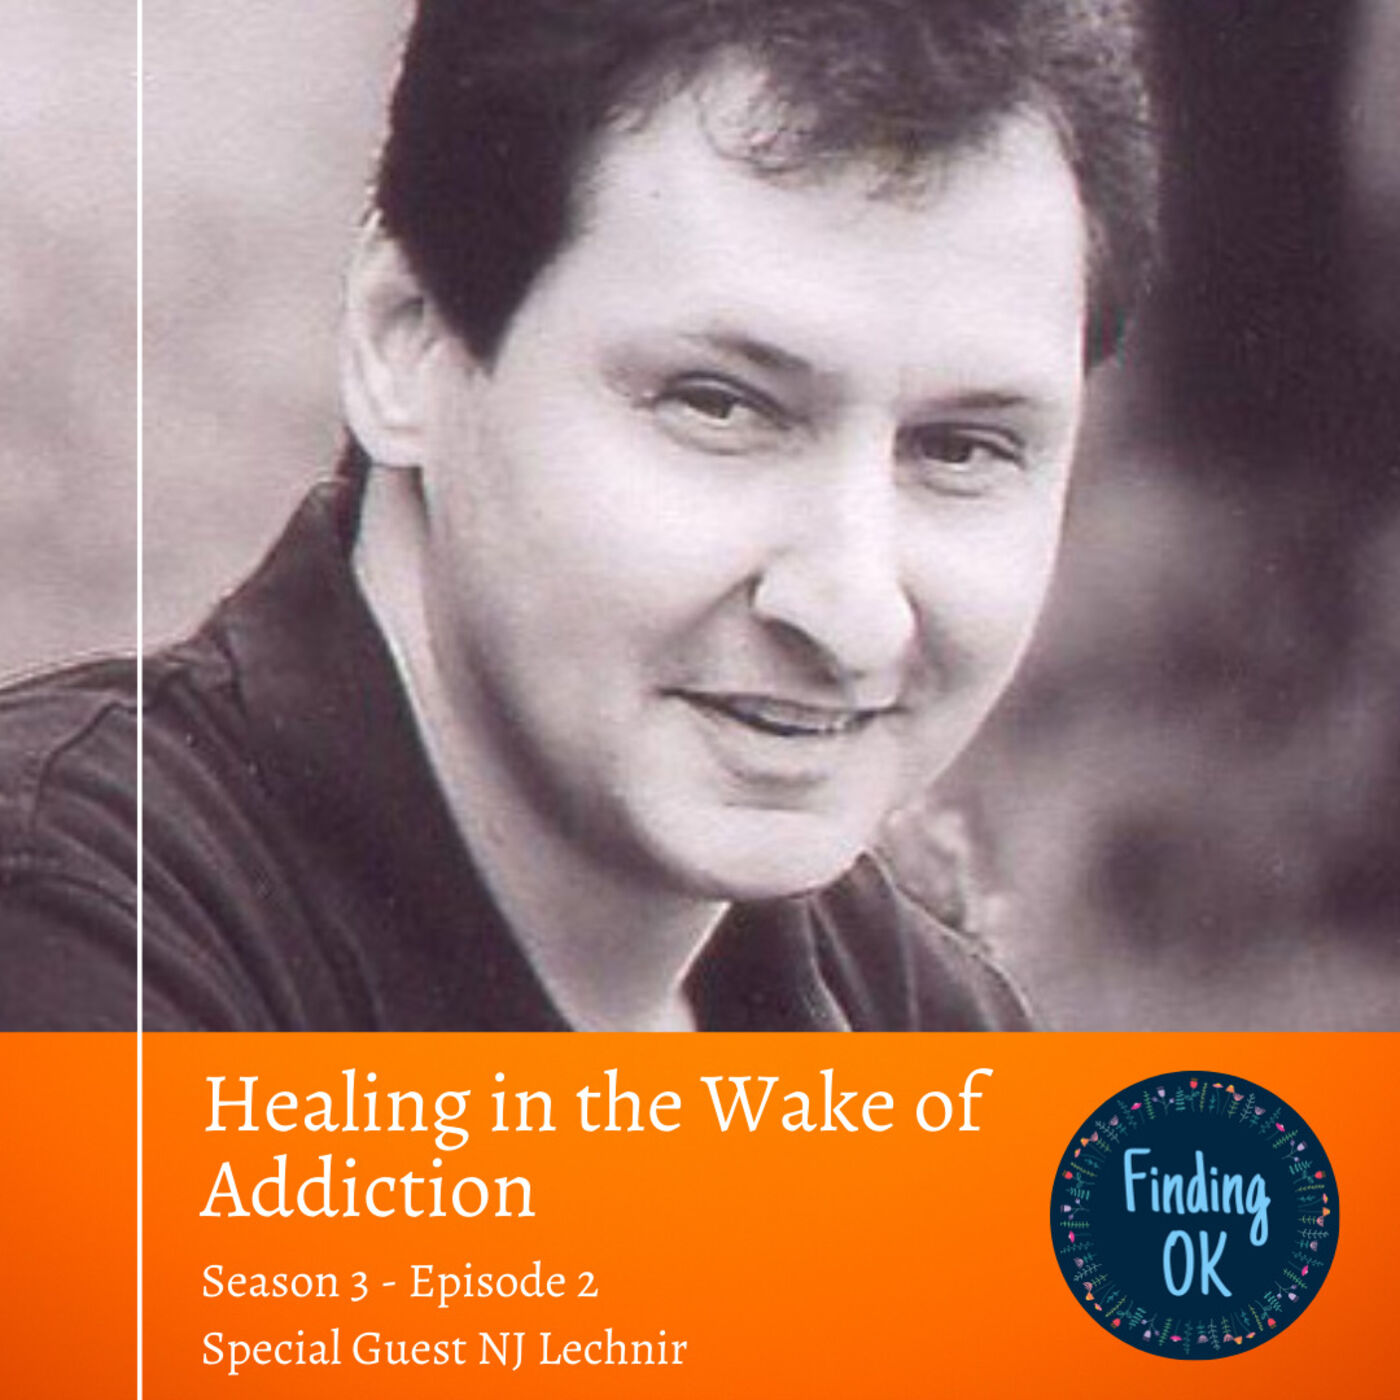 Healing in the Wake of Addiction